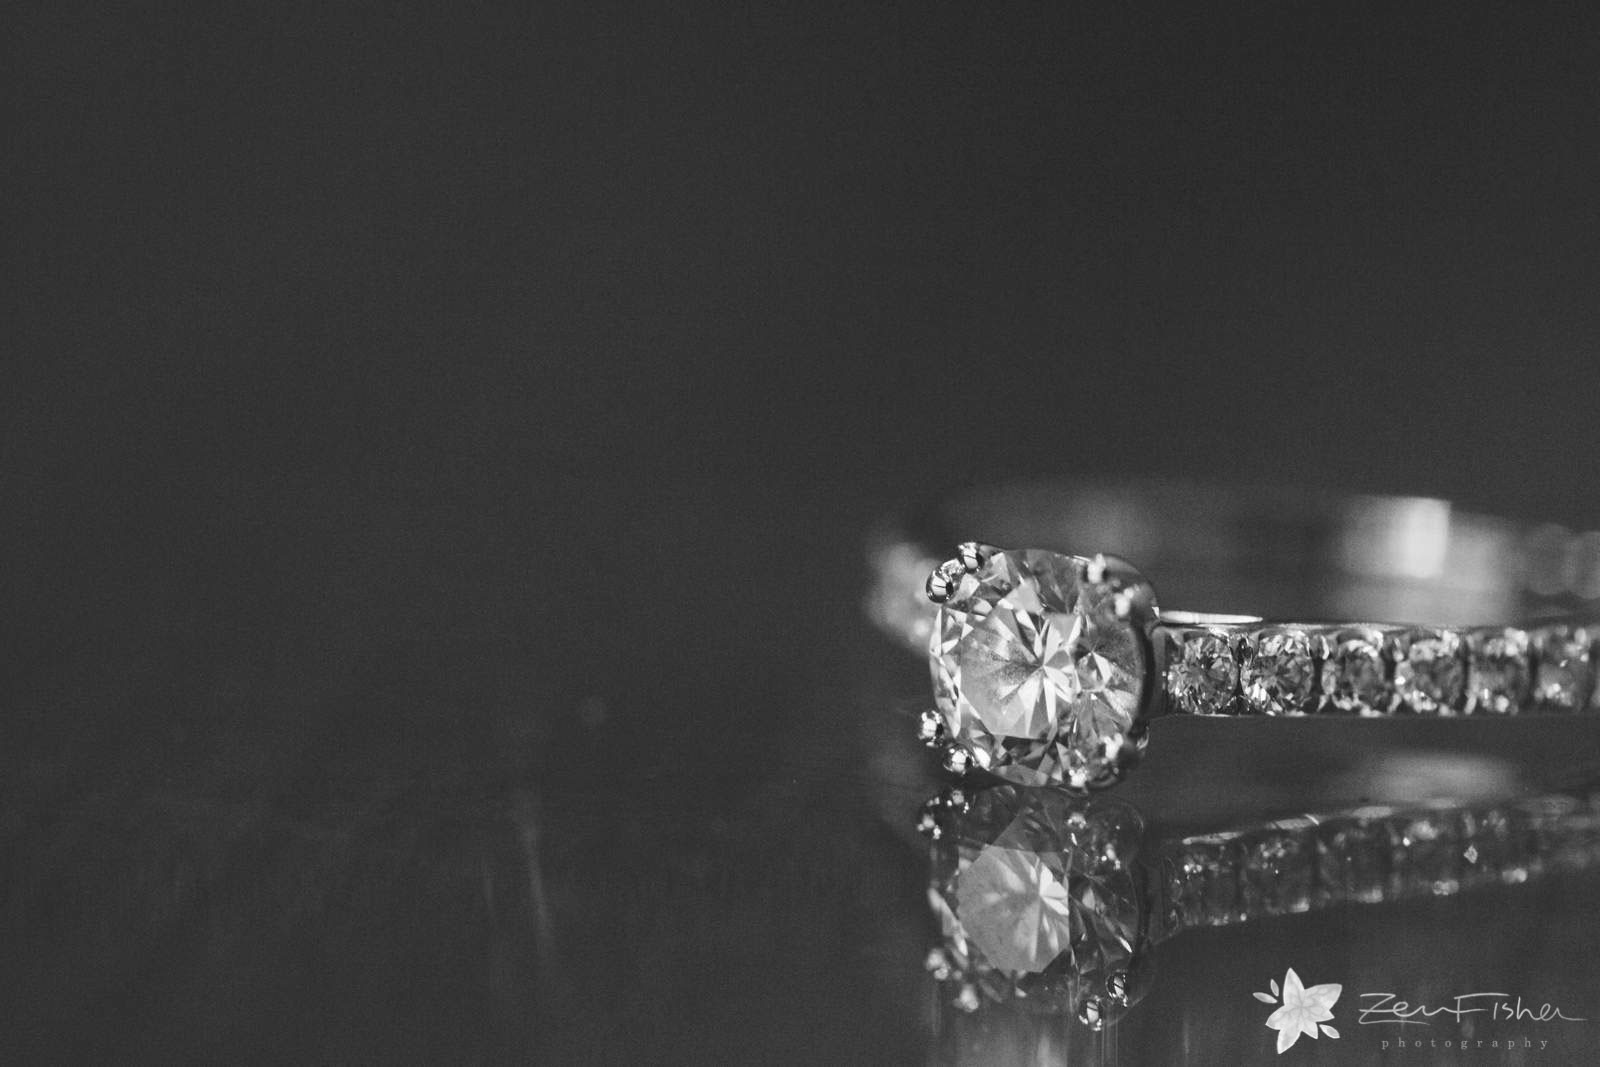 Detail of engagement ring, reflections on the table, black and white